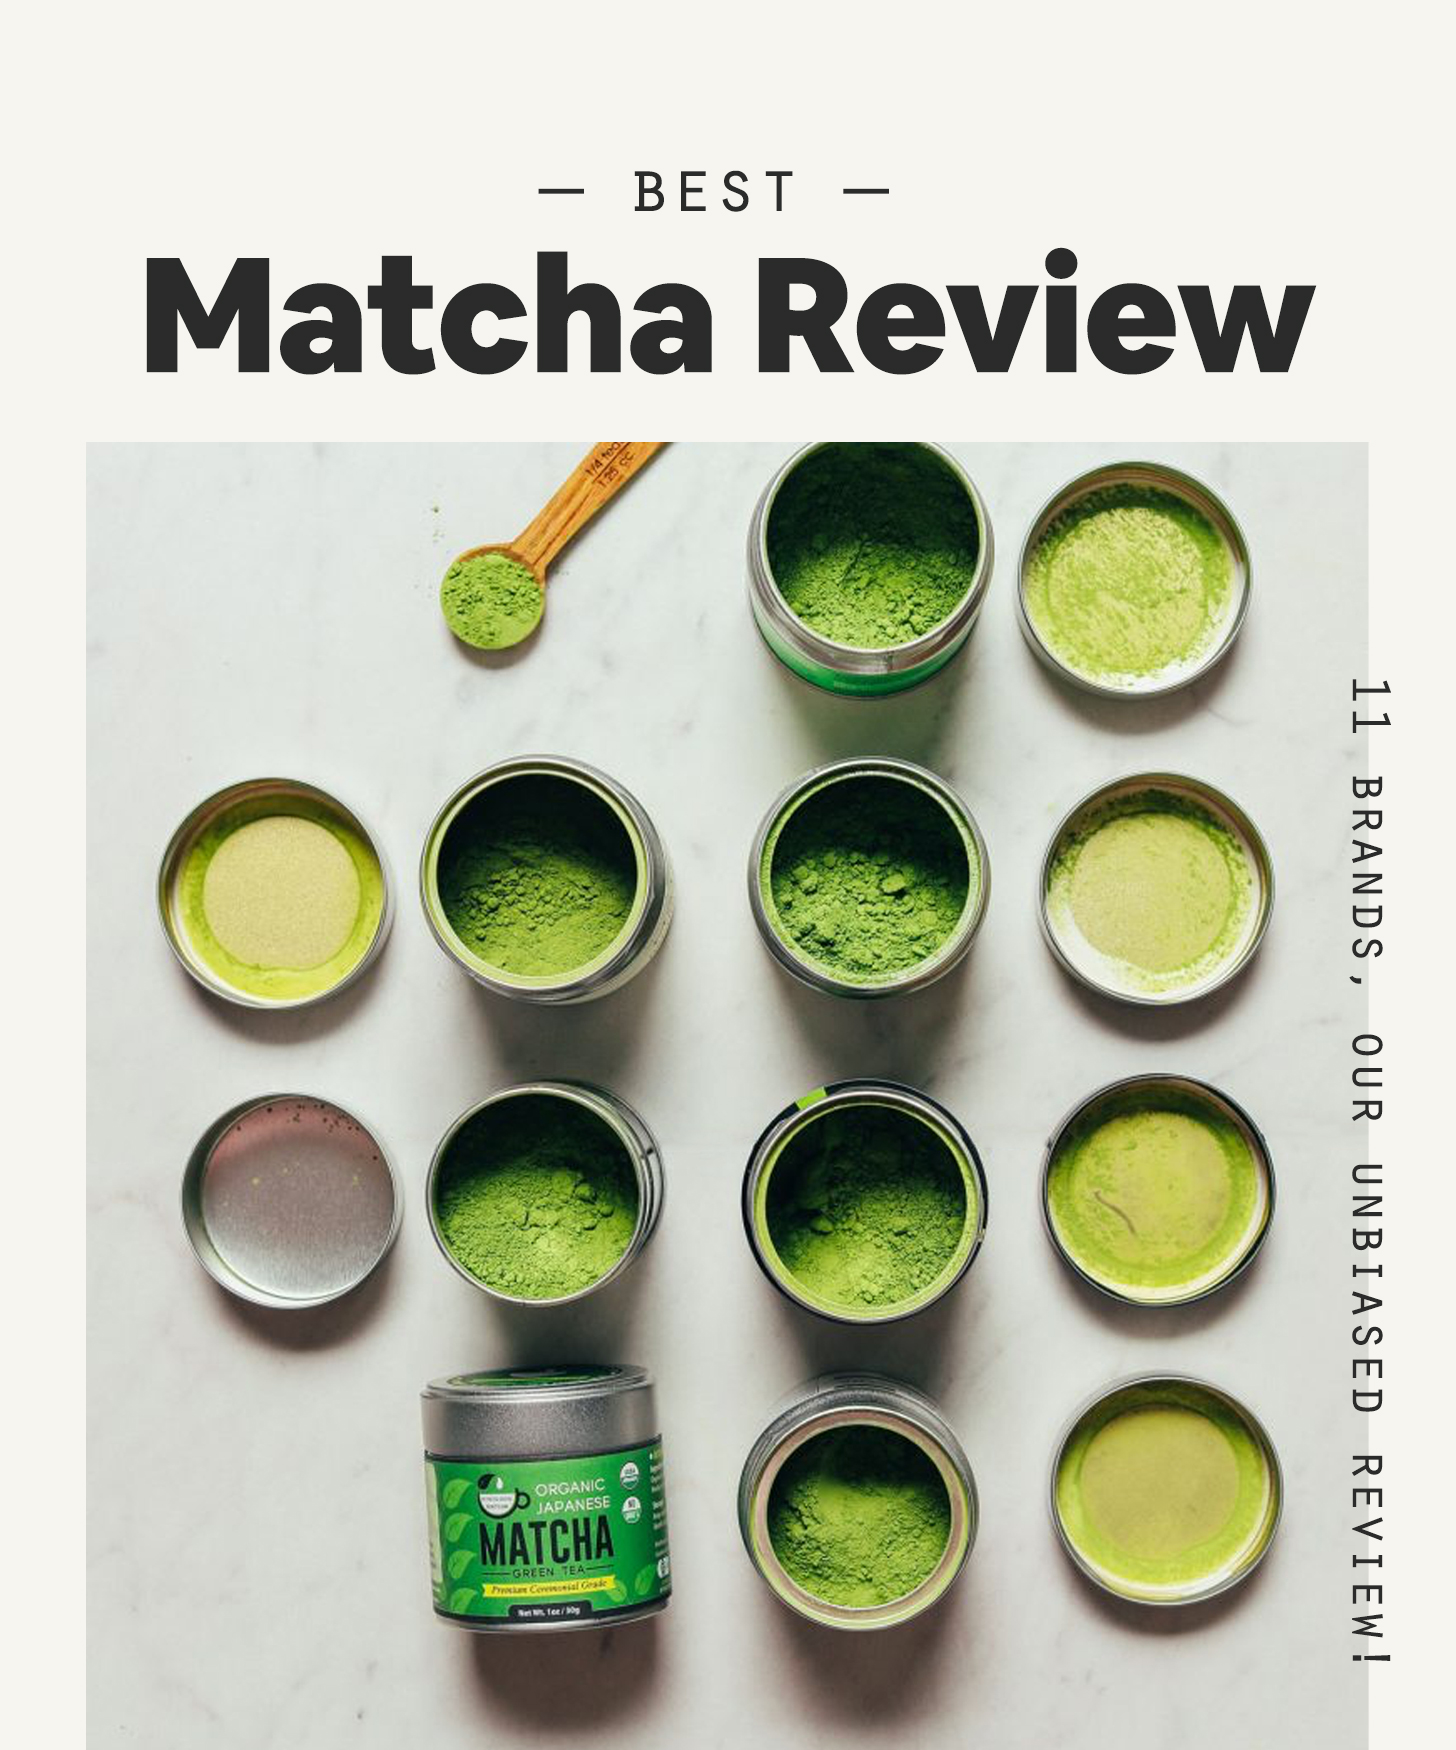 Tins of ceremonial matcha for our review of the top matcha brands on the market